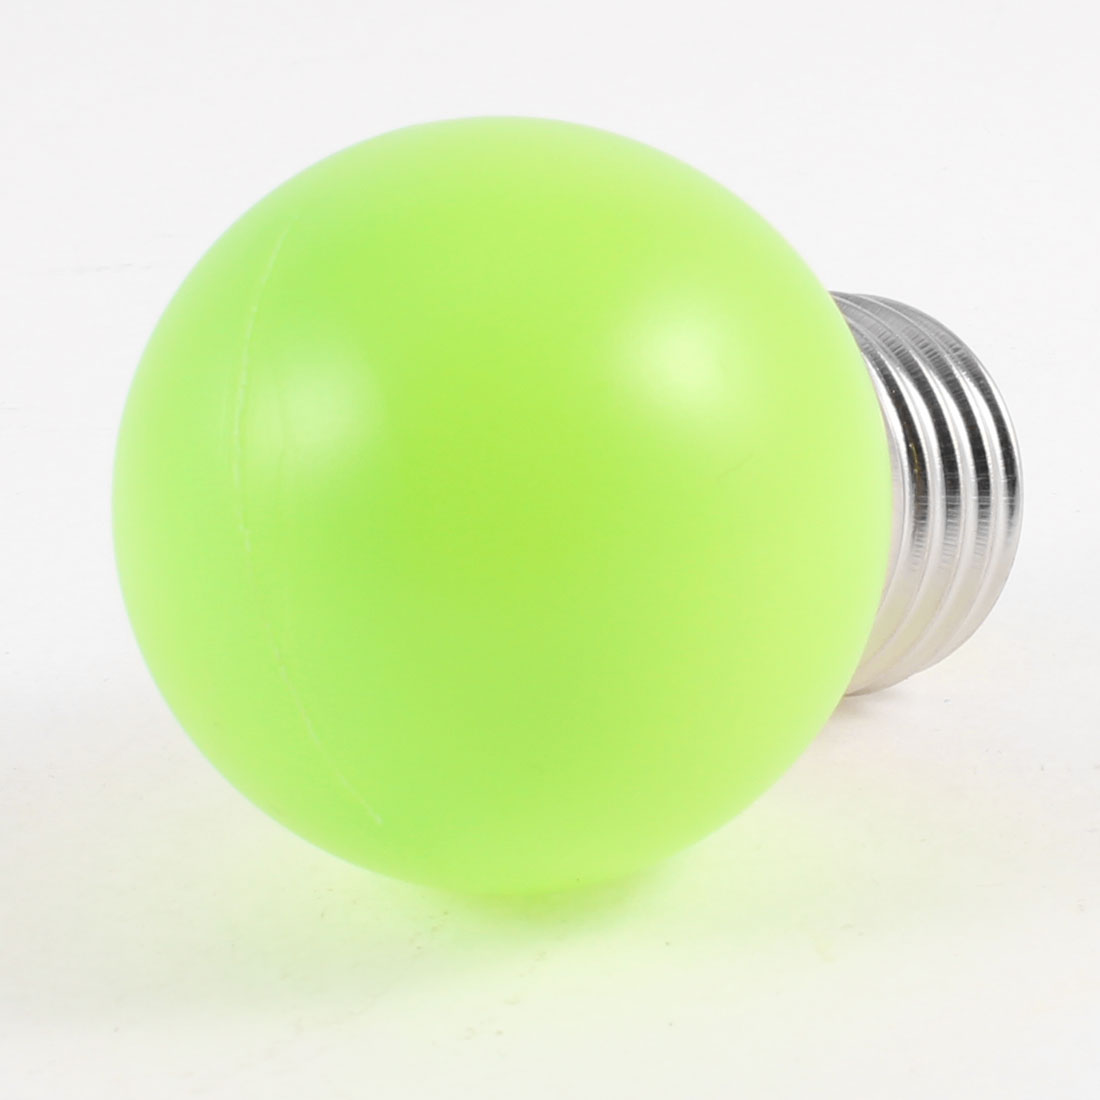 160-250V 1W Energy Saving Plastic Shell Green LED Lamp E27 Bulb